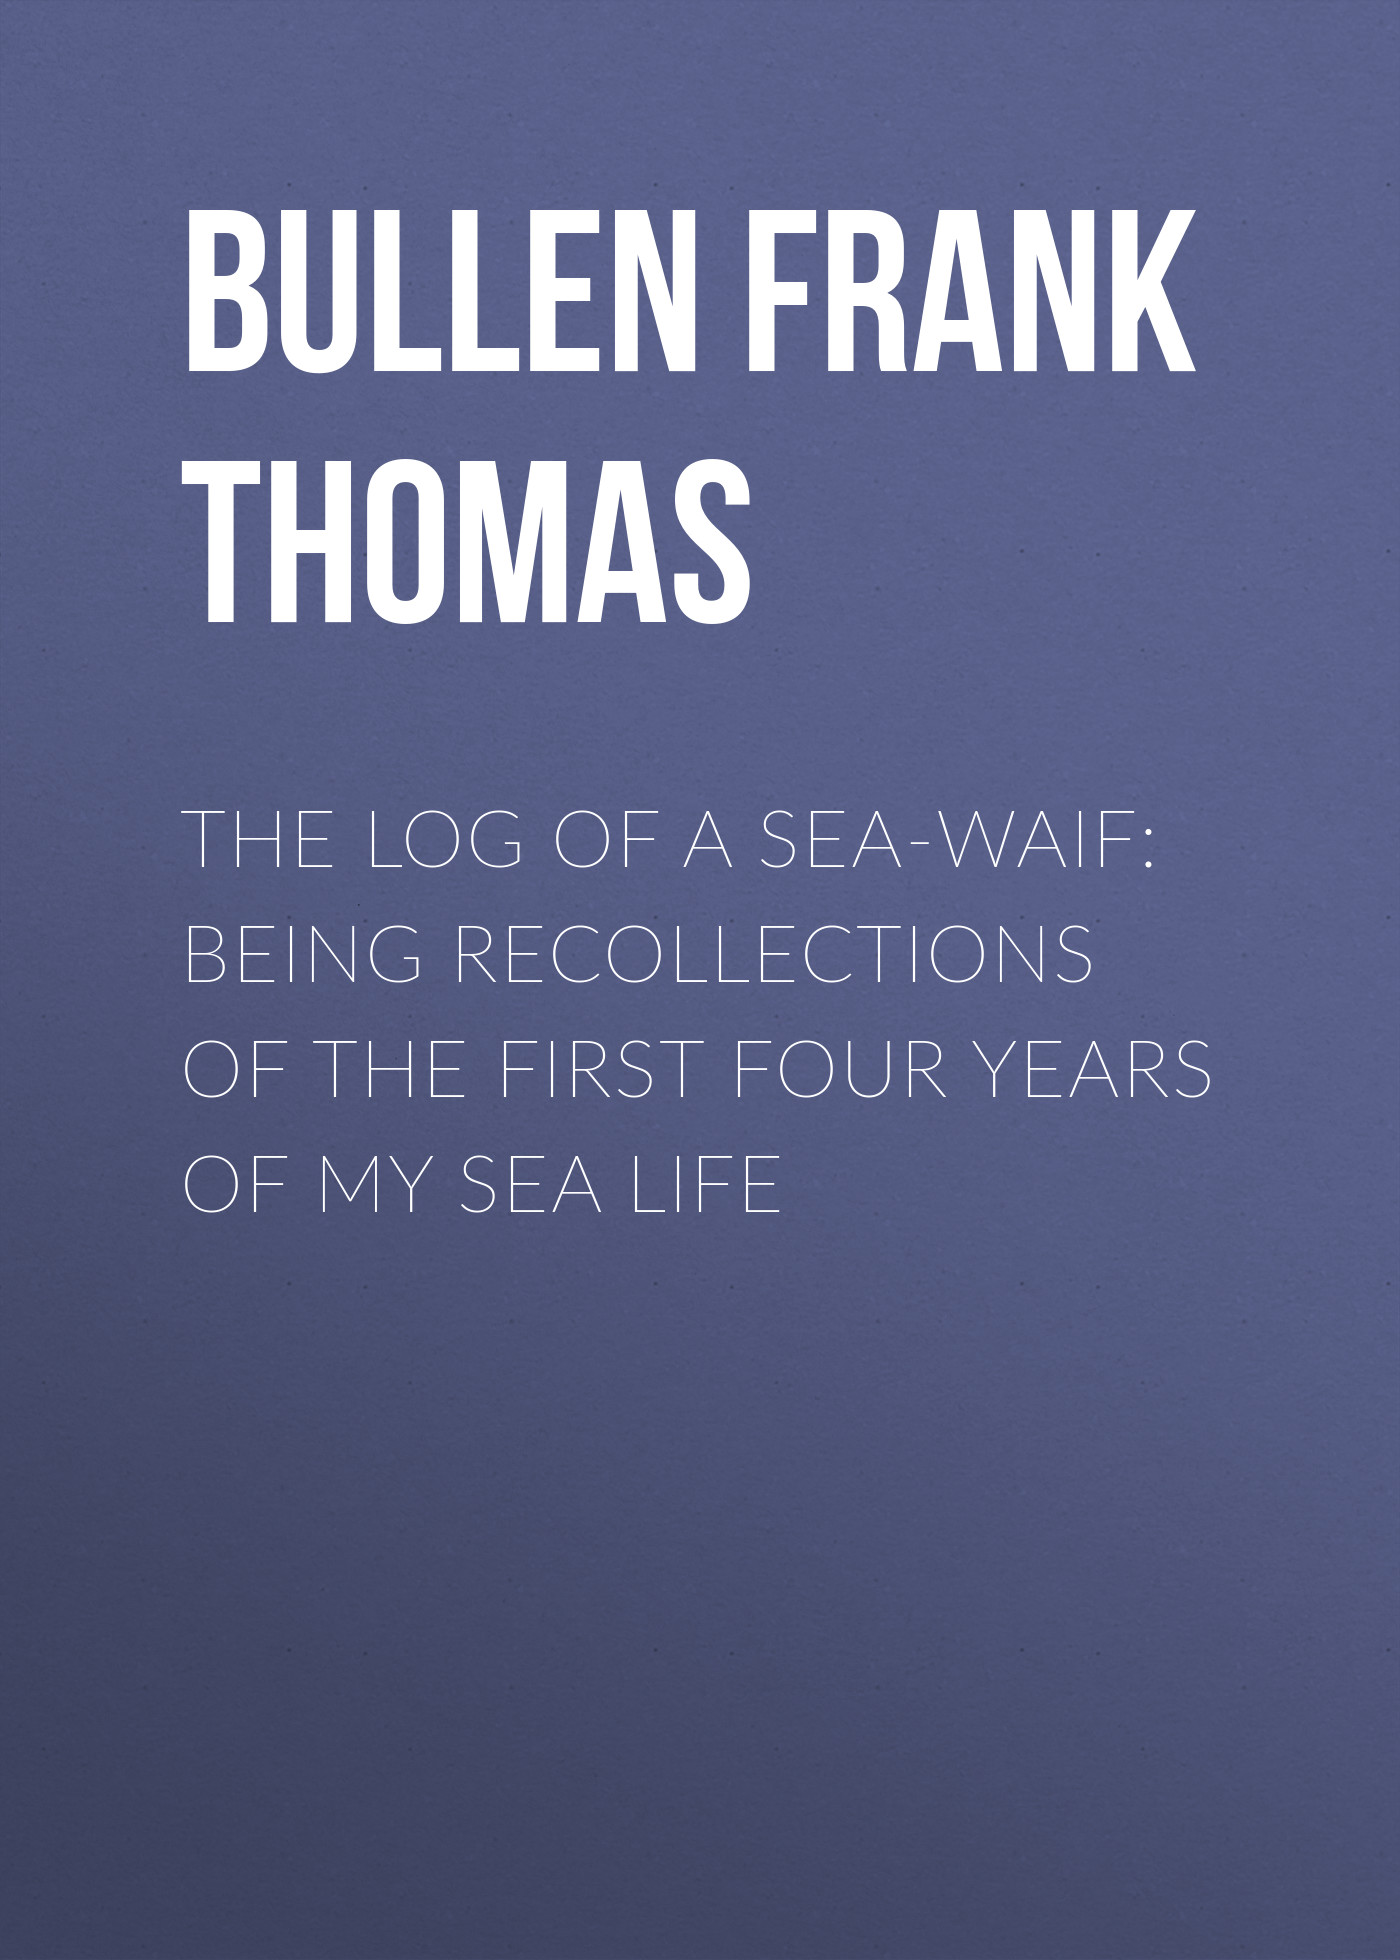 Bullen Frank Thomas The Log of a Sea-Waif: Being Recollections of the First Four Years of My Sea Life craig thomas sea leopard